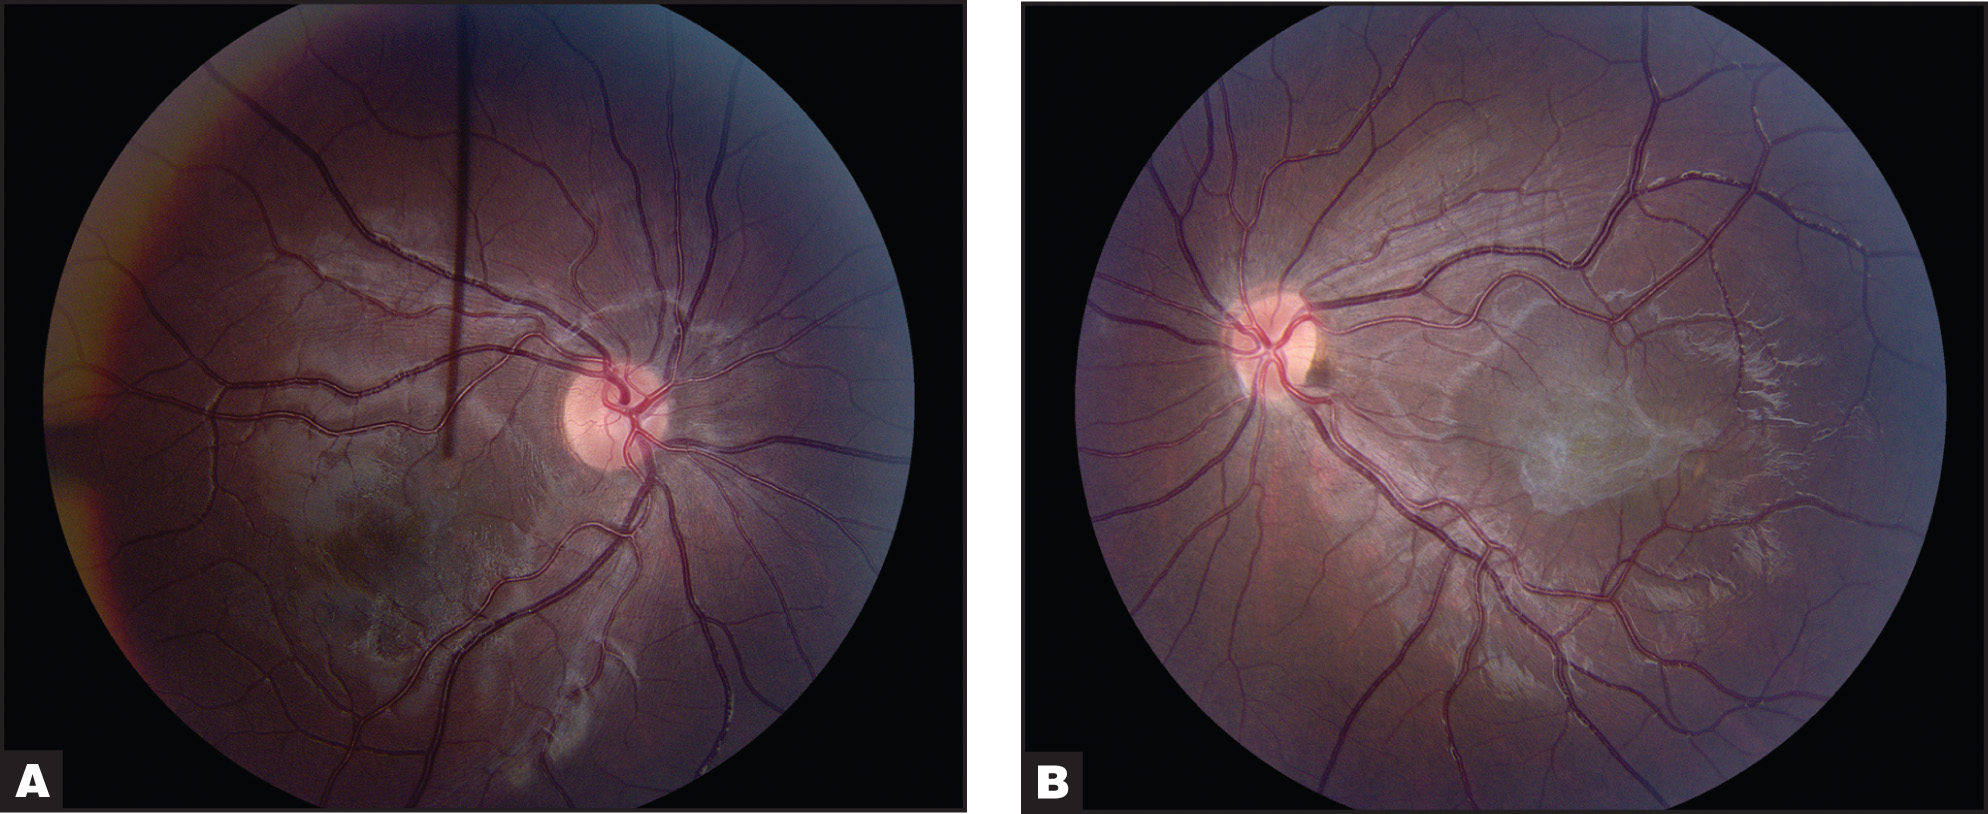 Color Fundus Photographs of Case 1. (A) Thin, Translucent Epiretinal Membrane in the Right Eye with 20/20 Visual Acuity. (B) Thick, Broader Epiretinal Membrane in the Left Eye with 20/200 Visual Acuity.